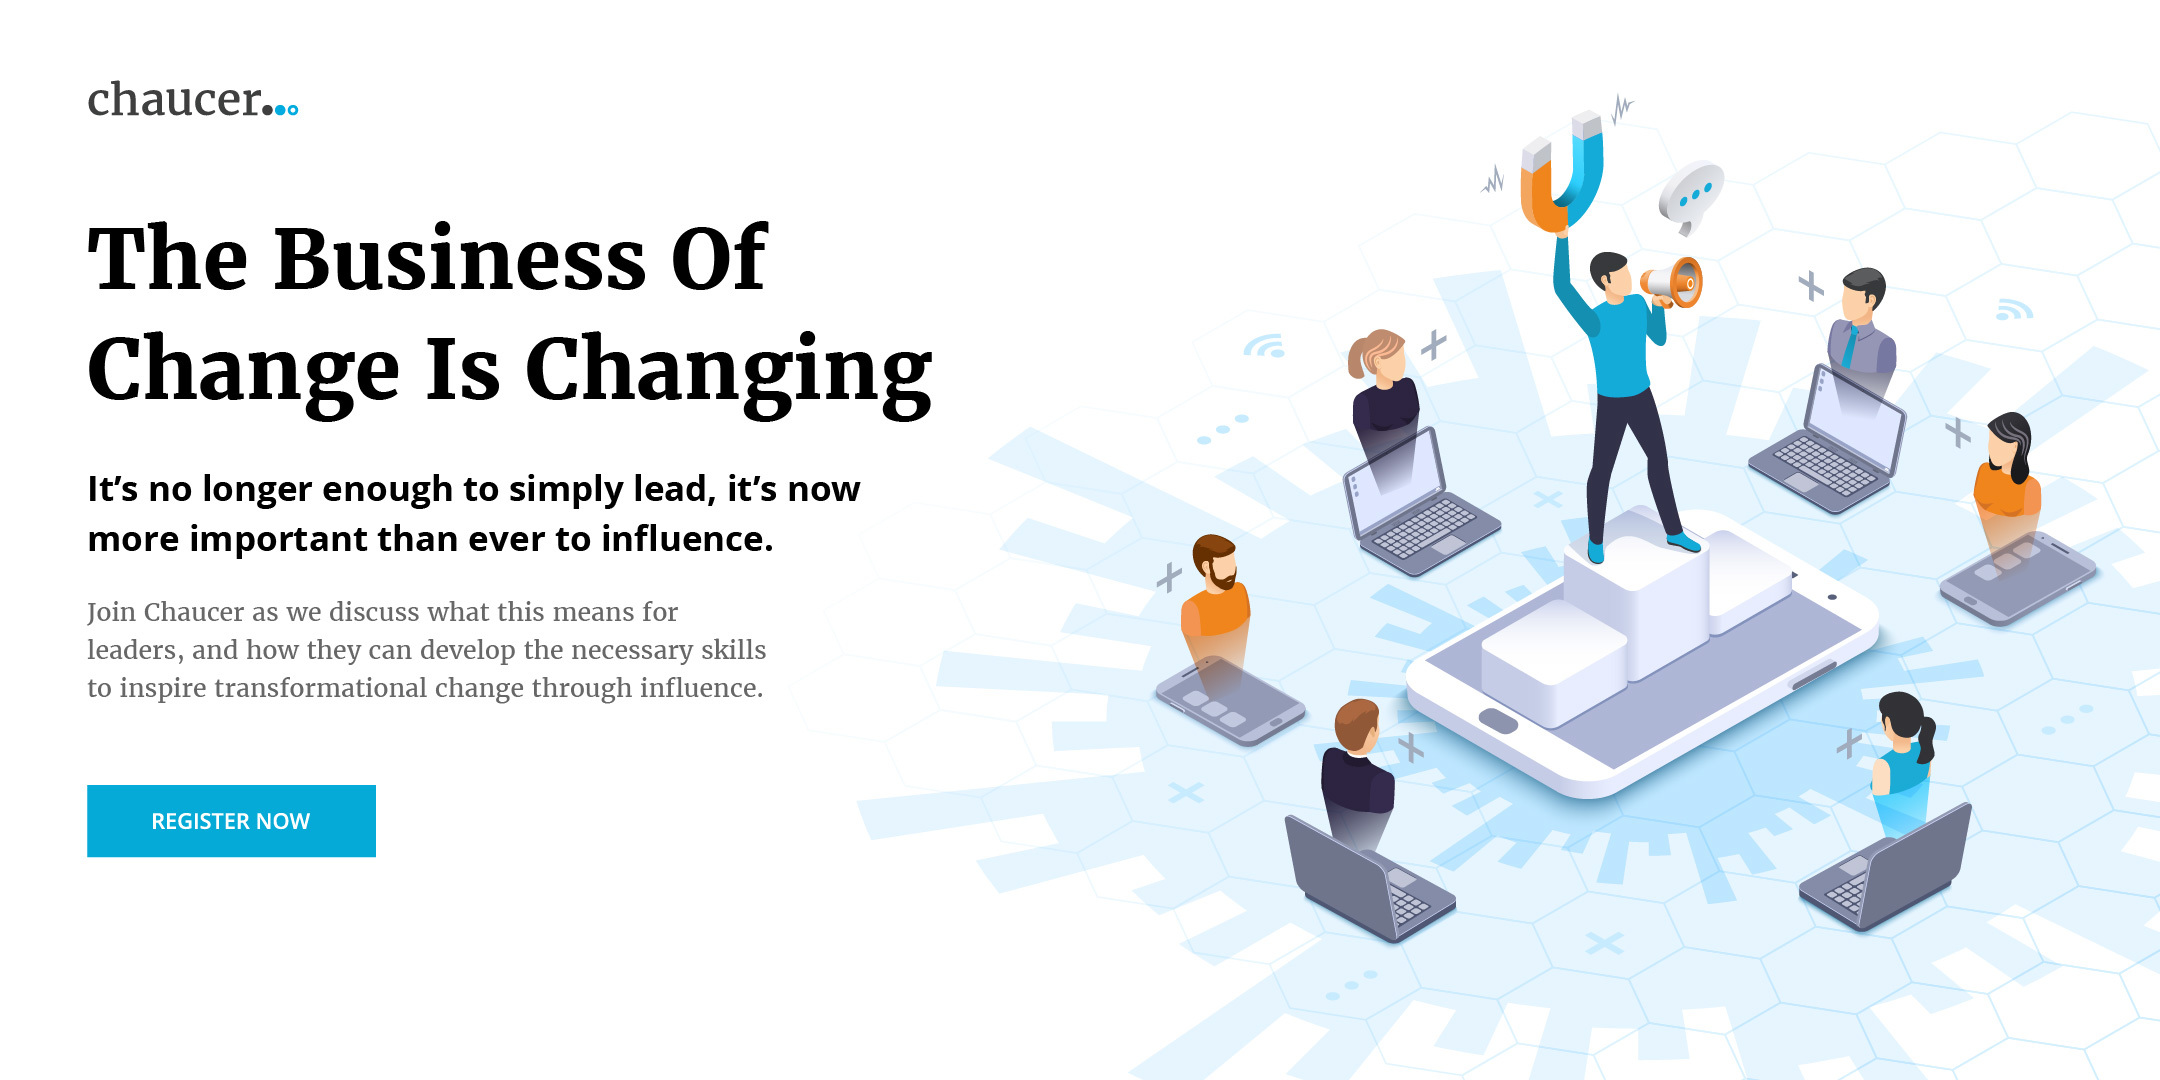 The Business Of Change Is Changing